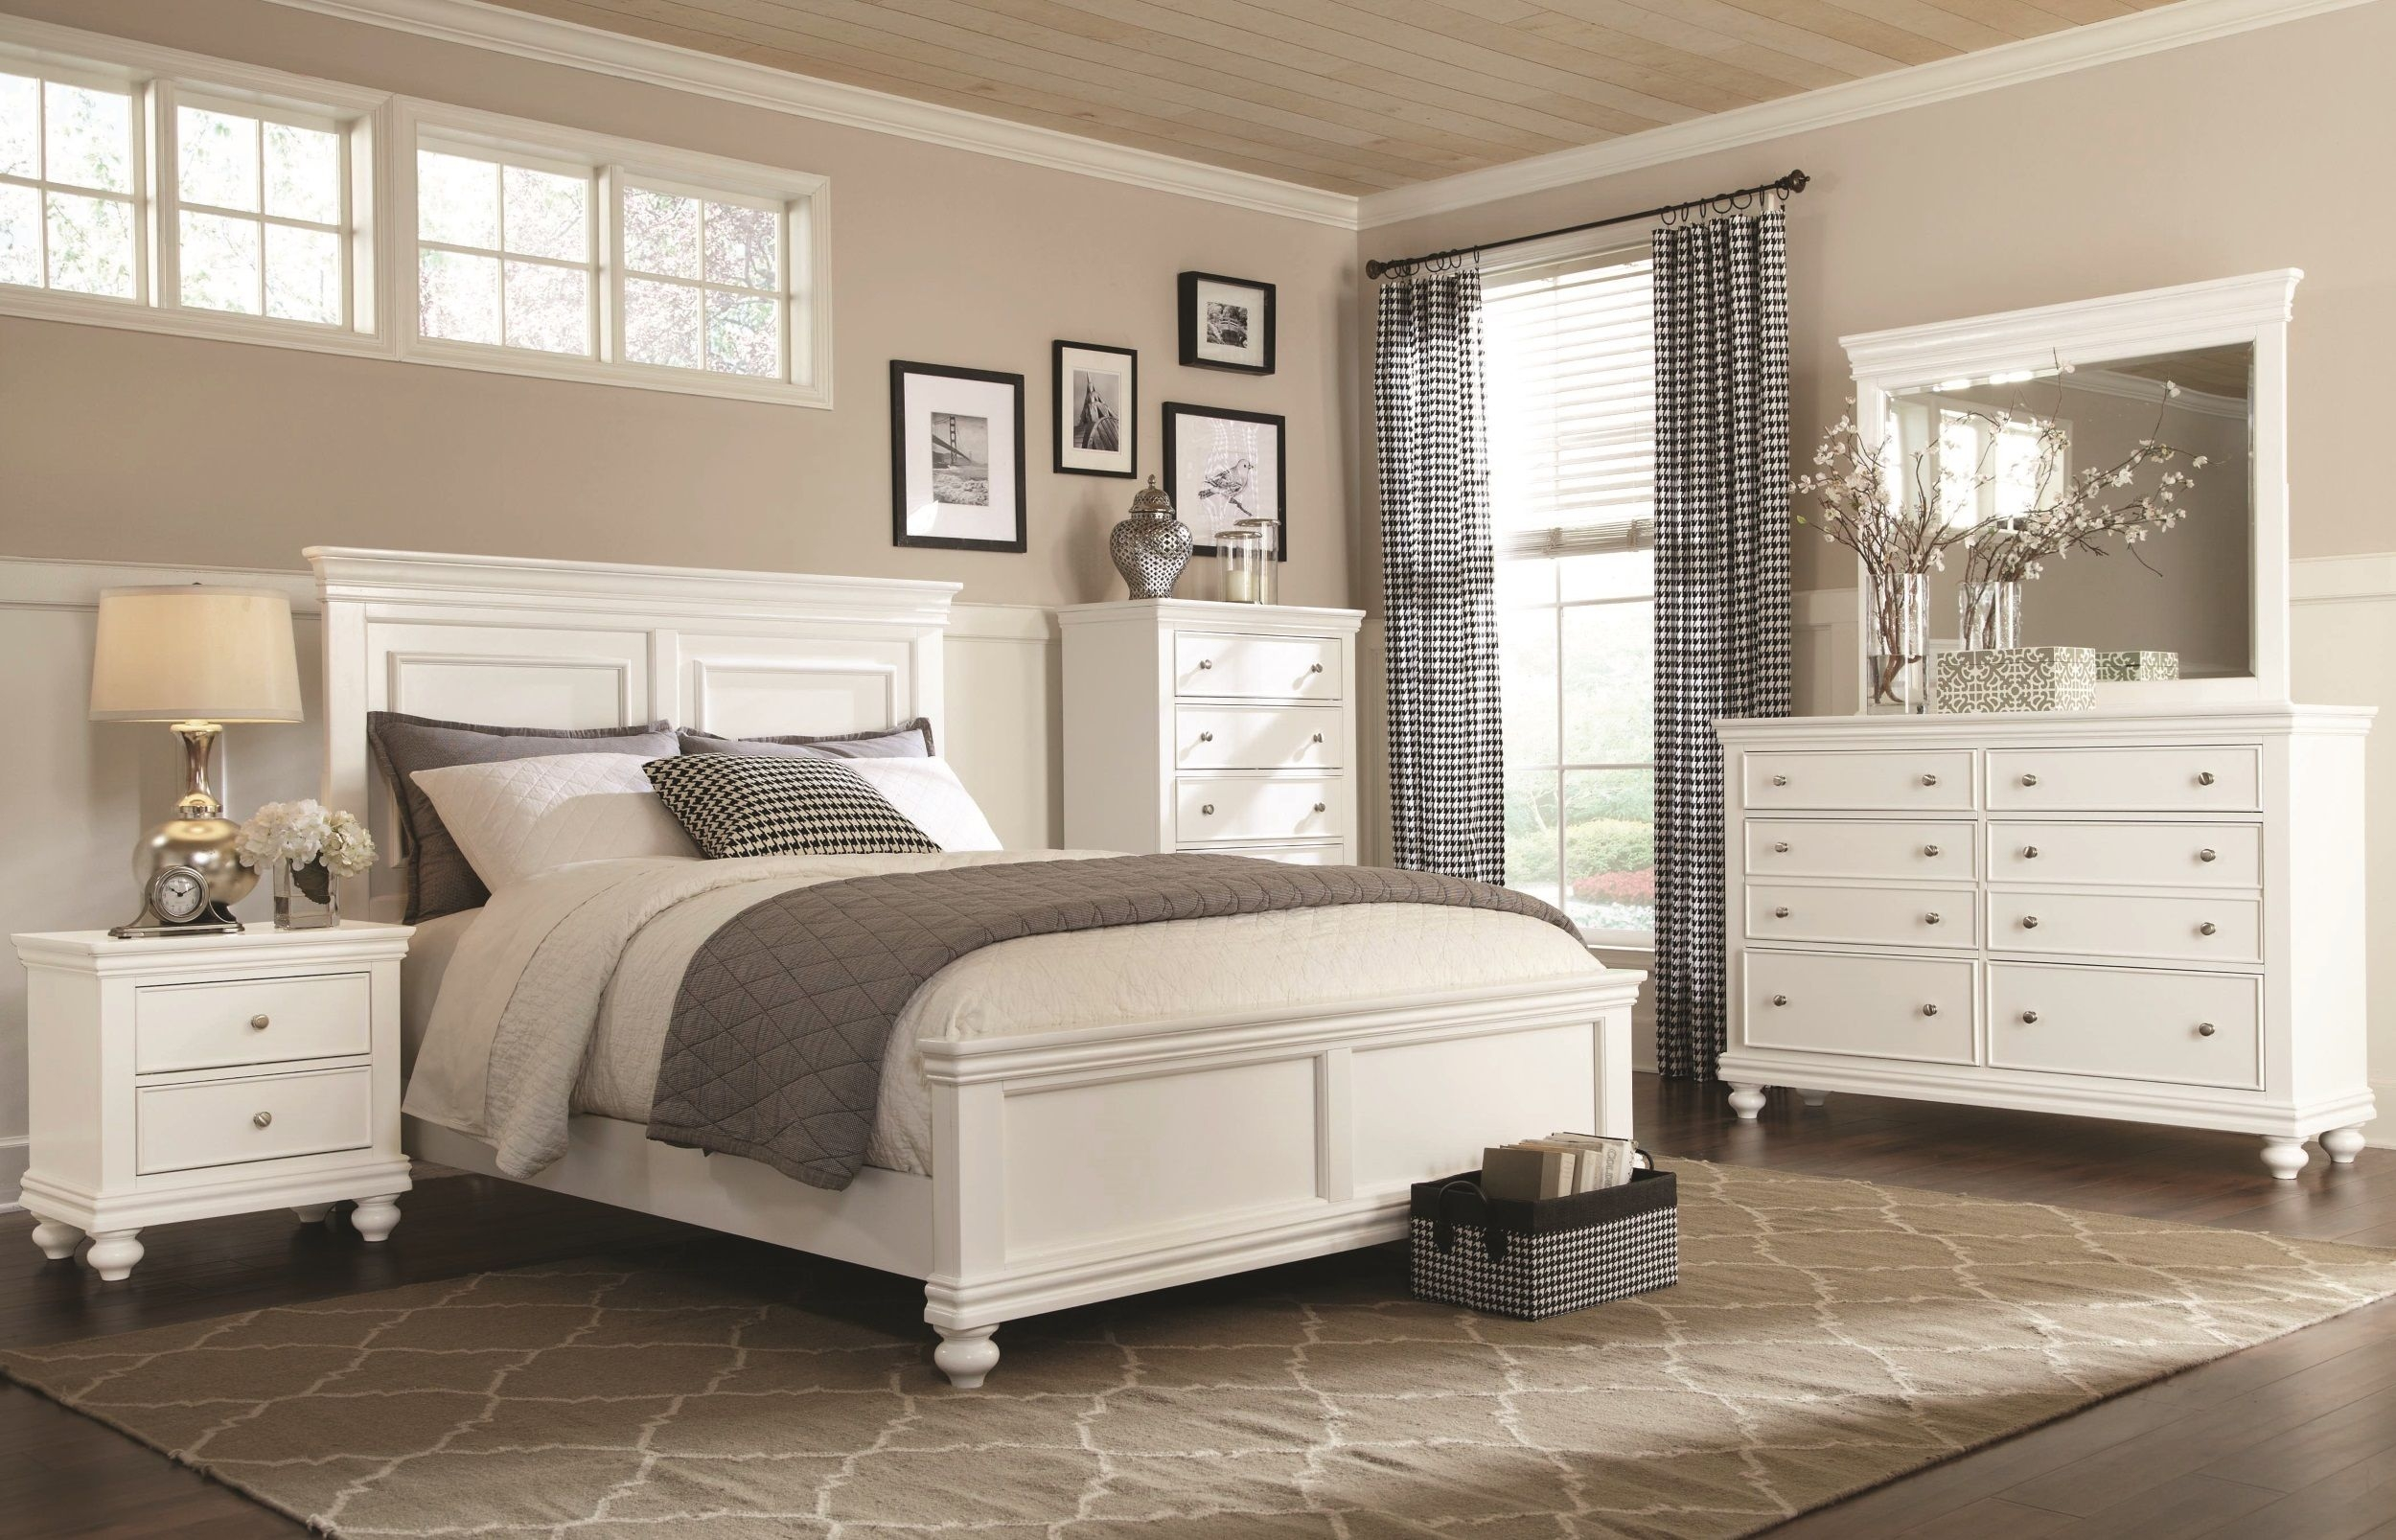 Clearance White 4 Piece Queen Bedroom Set Essex In 2018 Bedroom